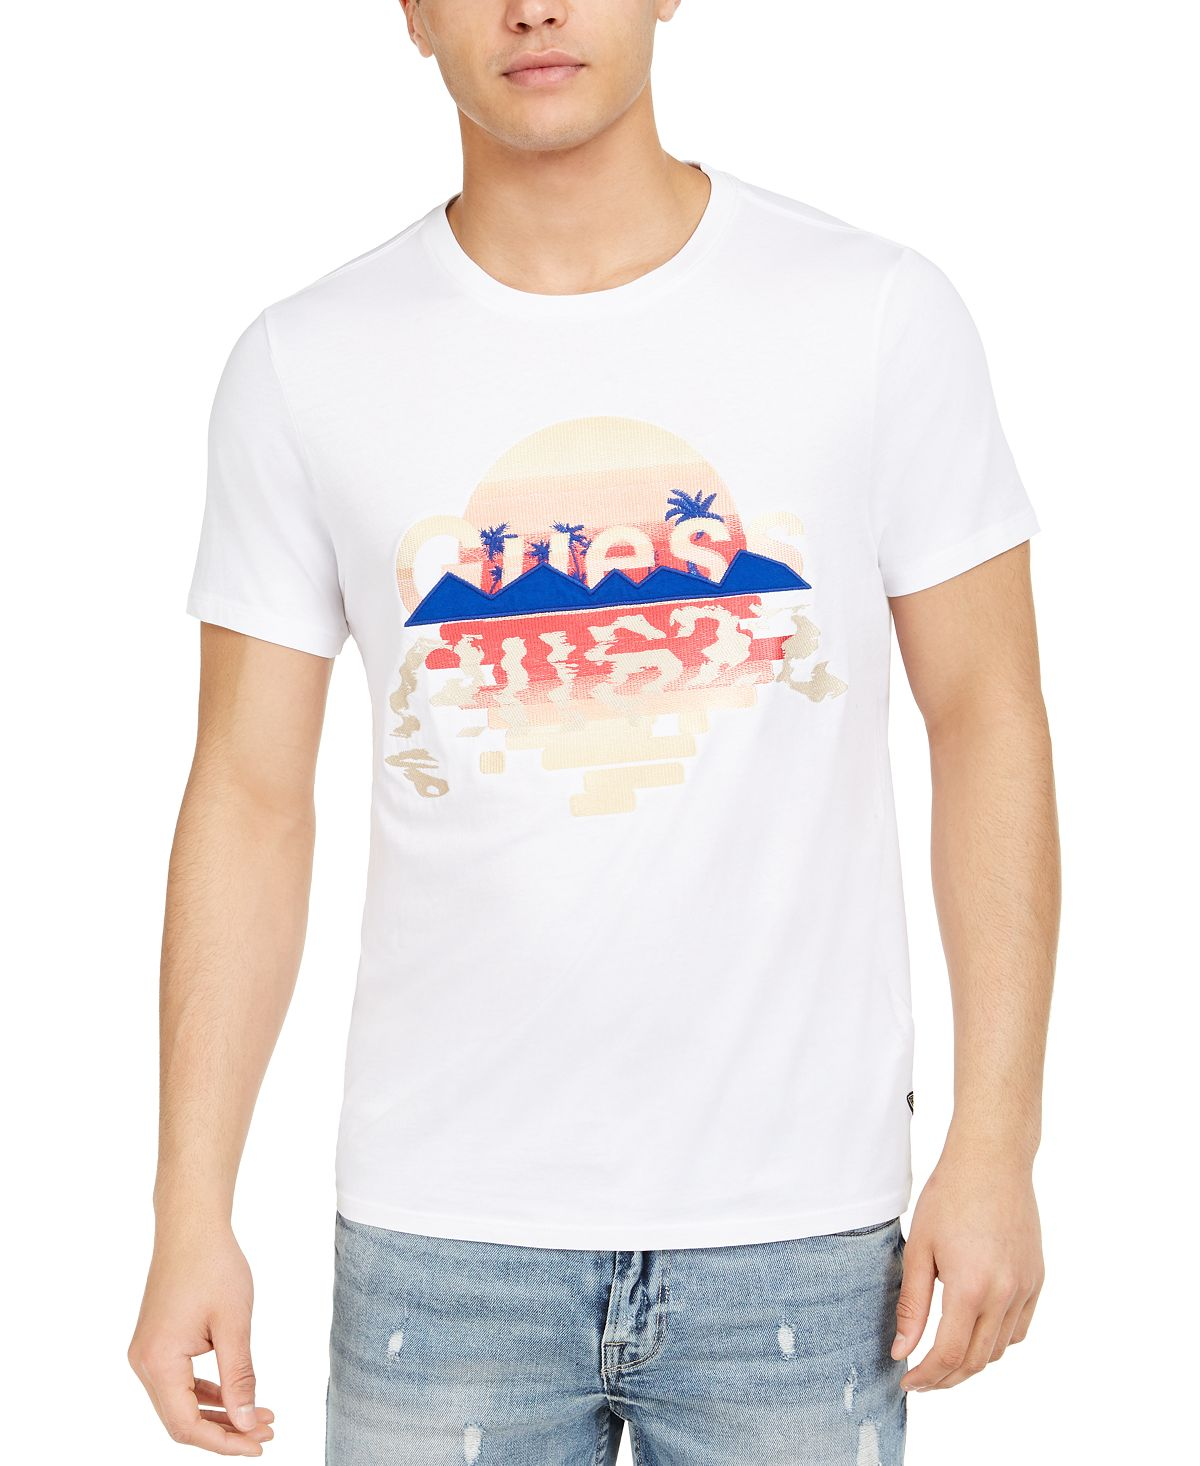 Guess Island Graphic T-shirt Pure White